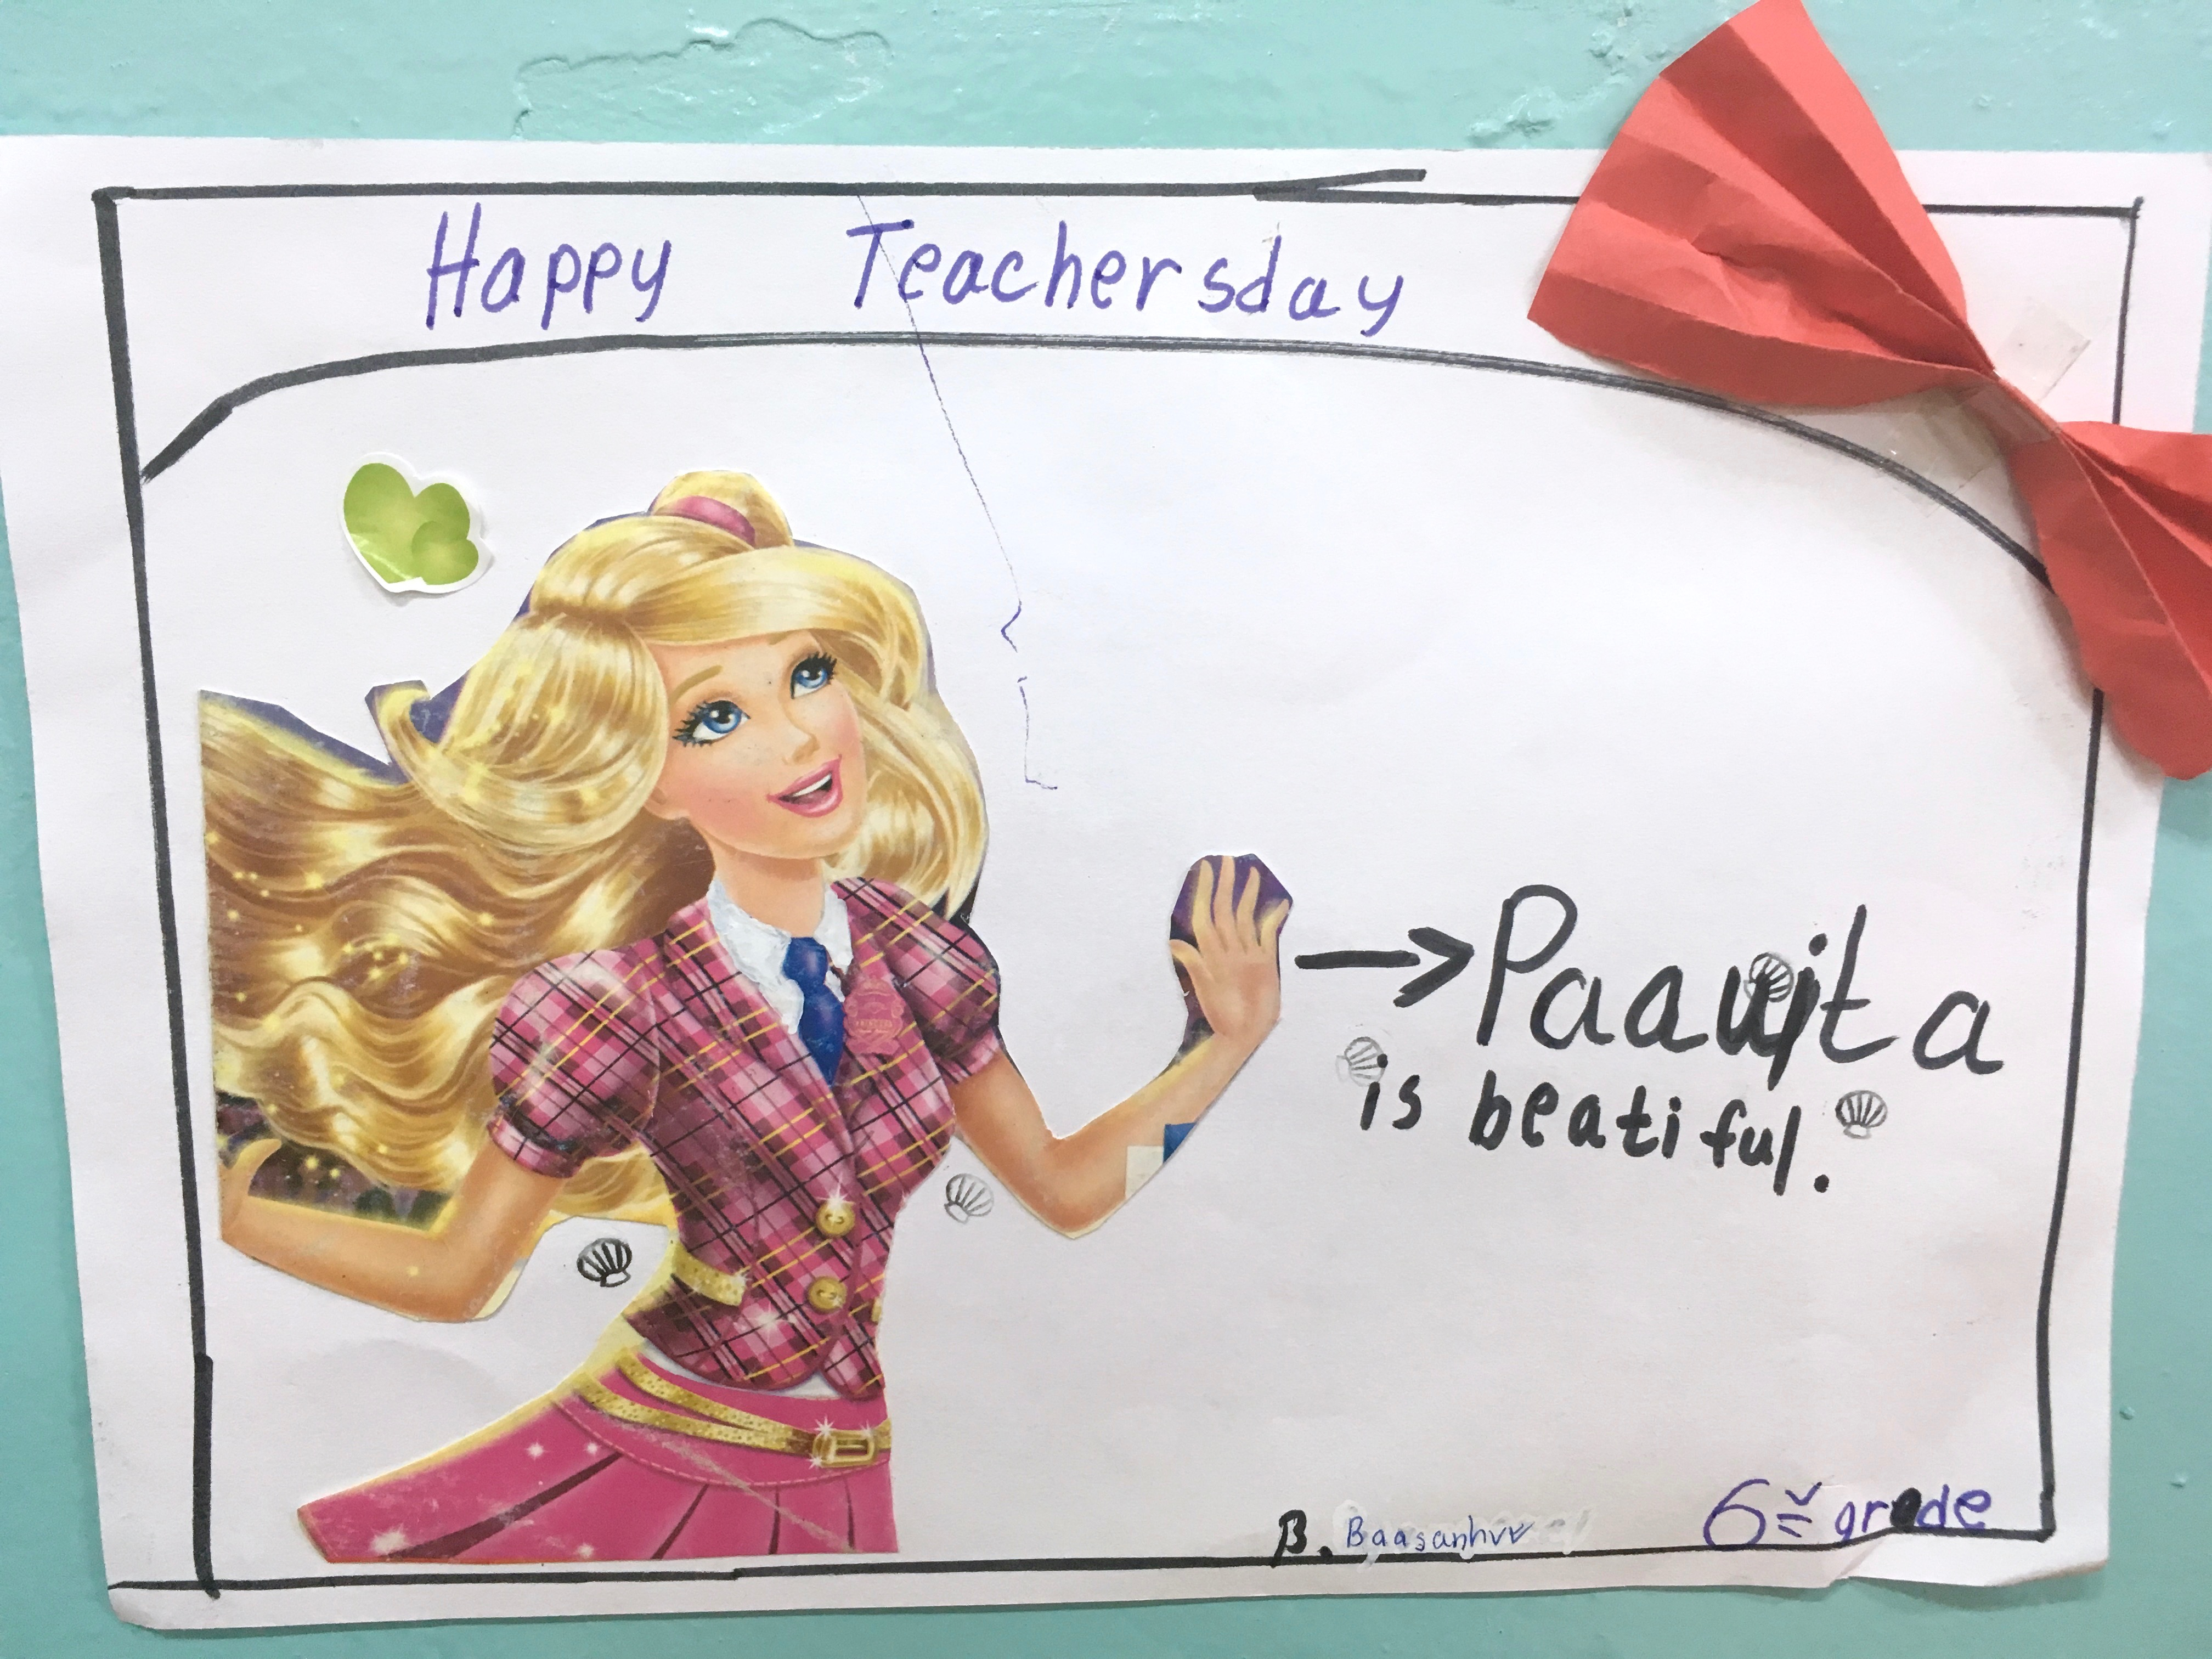 As symbolized in this Teacher's Day card, I mostly stand around looking pretty, and I think the students are really responding to that.